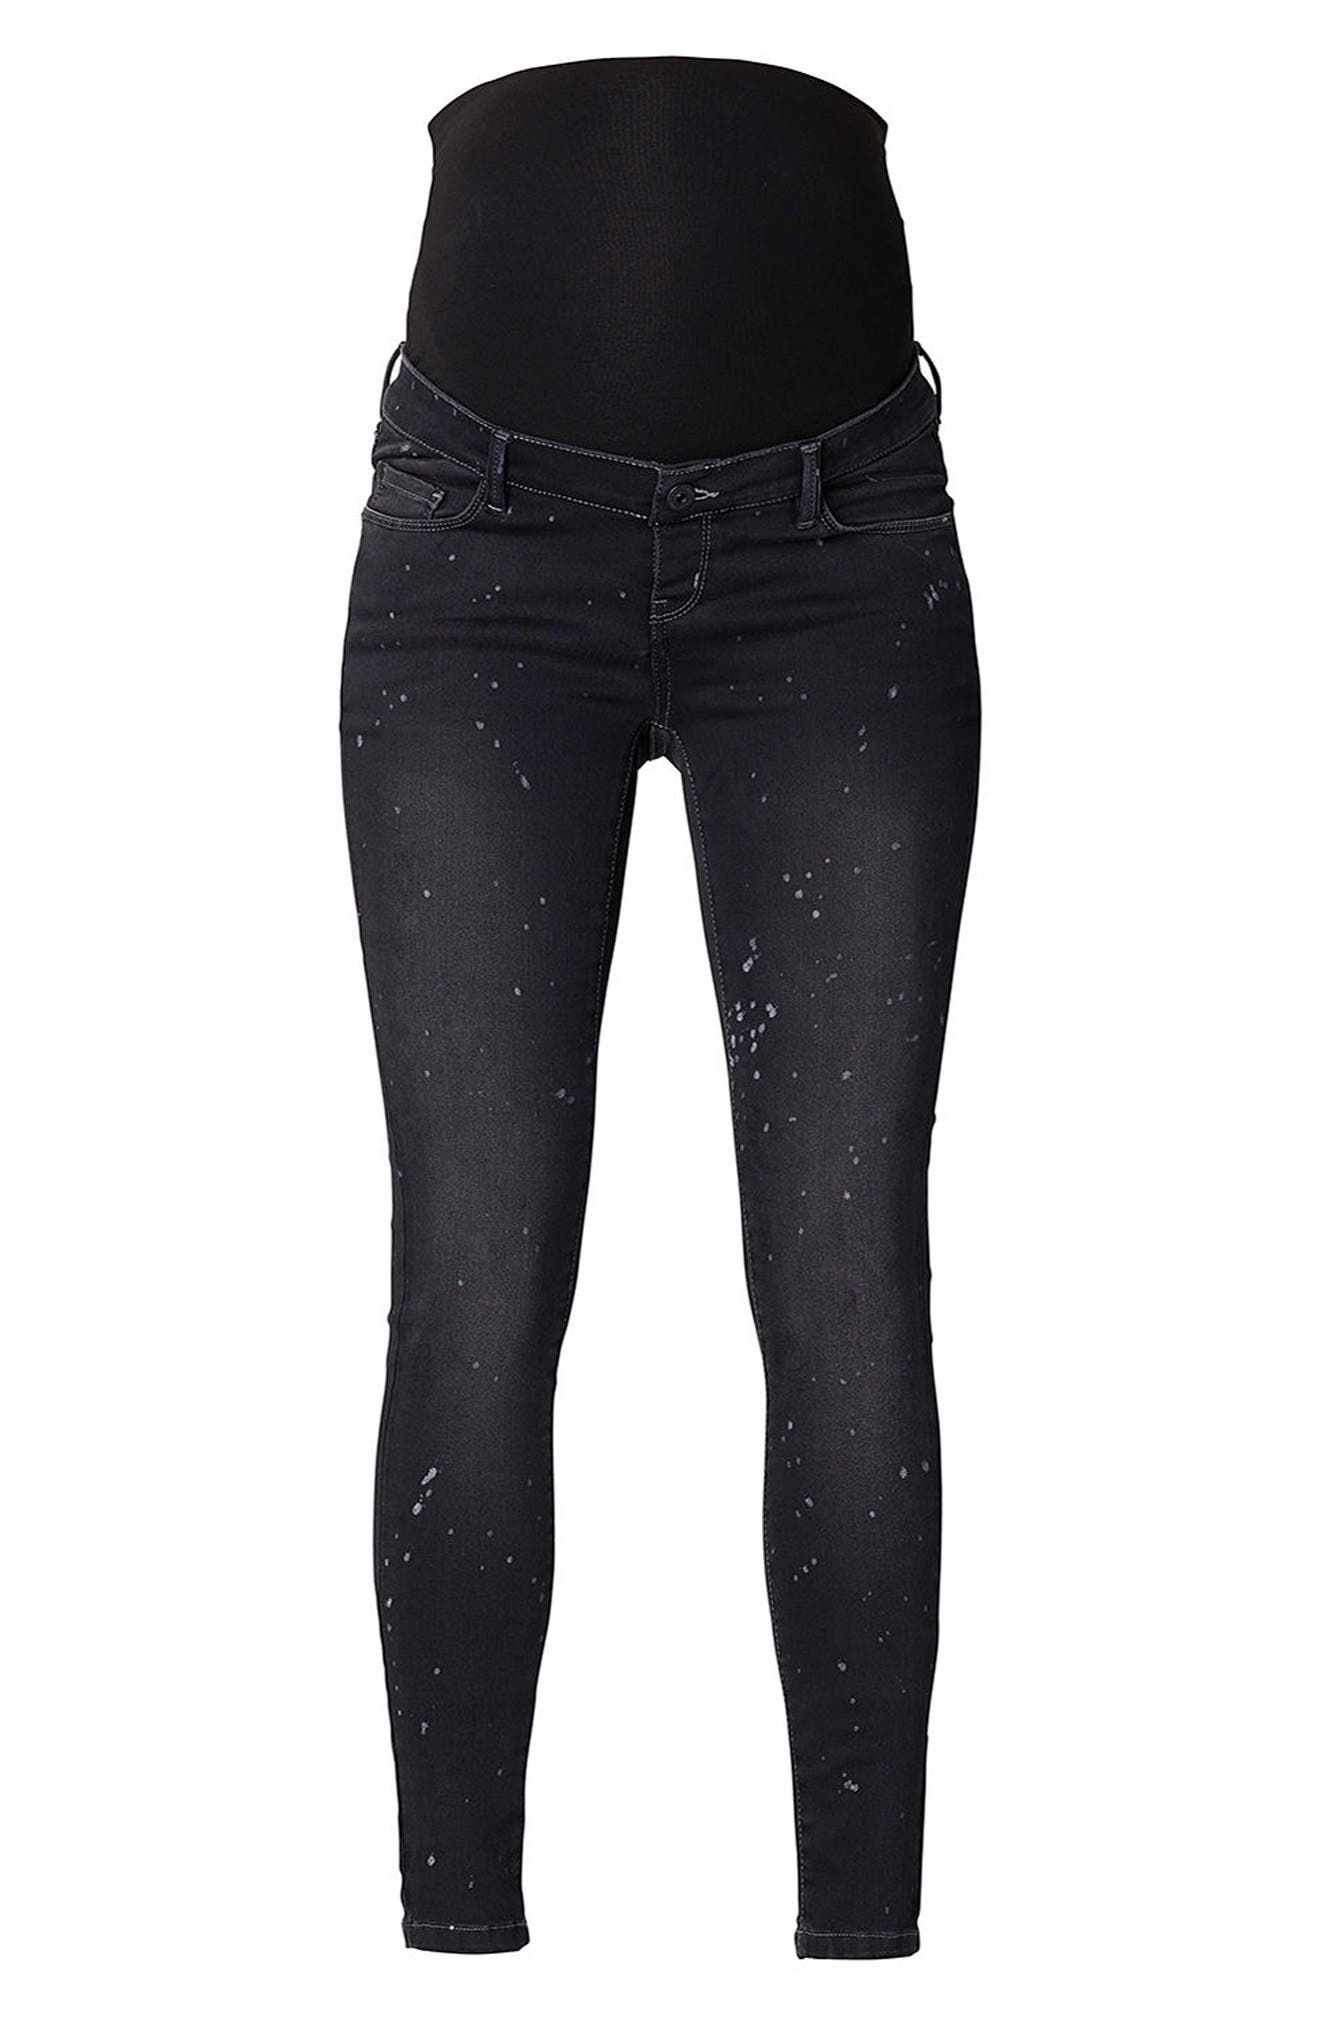 Over the Belly Skinny Maternity Jeans,                         Main,                         color, GREY DENIM